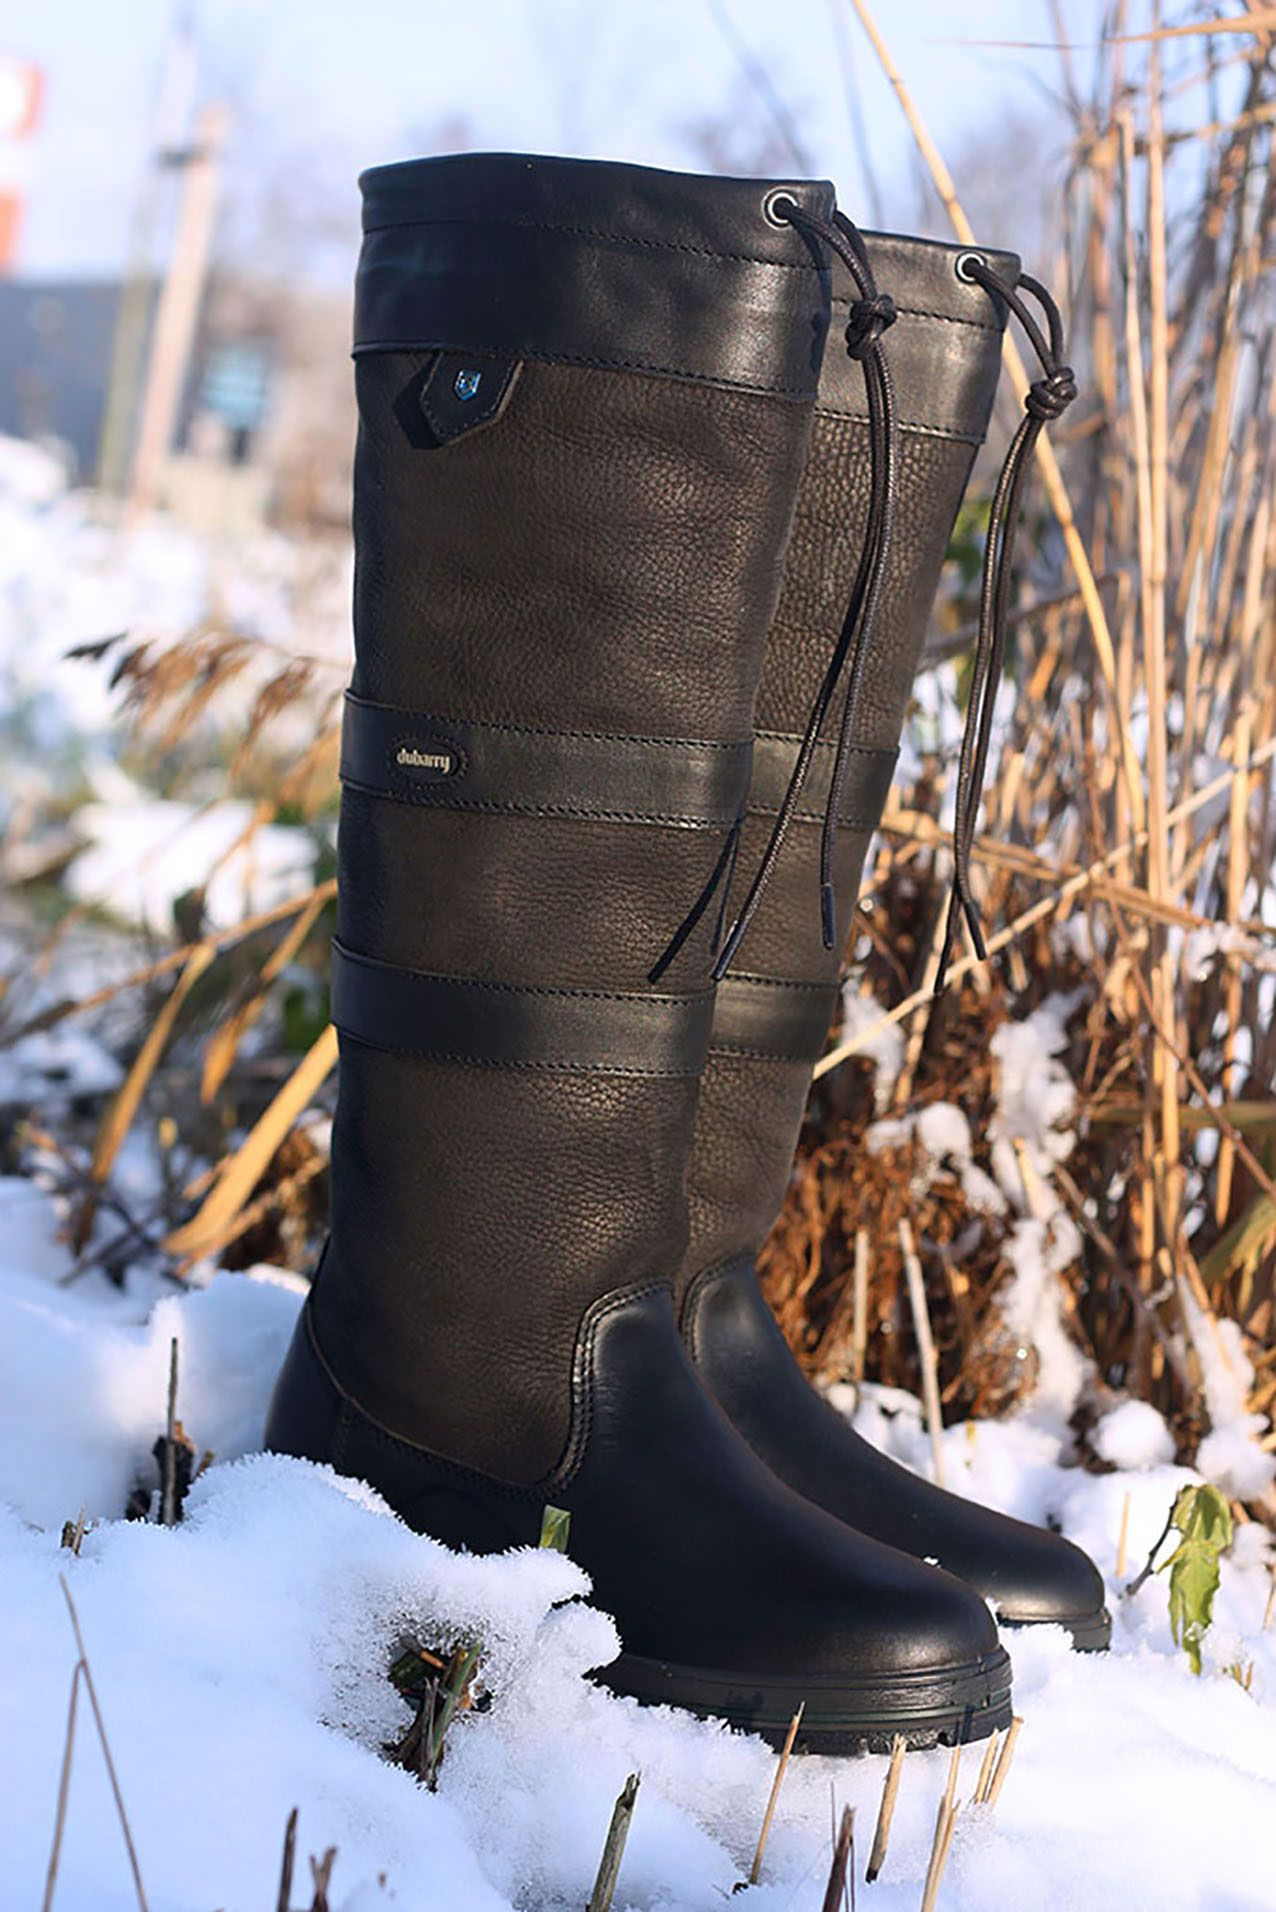 Dubarry boots to keep your feet warm during the big freeze! Absolutely in  love with my bday present from Ma 46e8d2fe2d